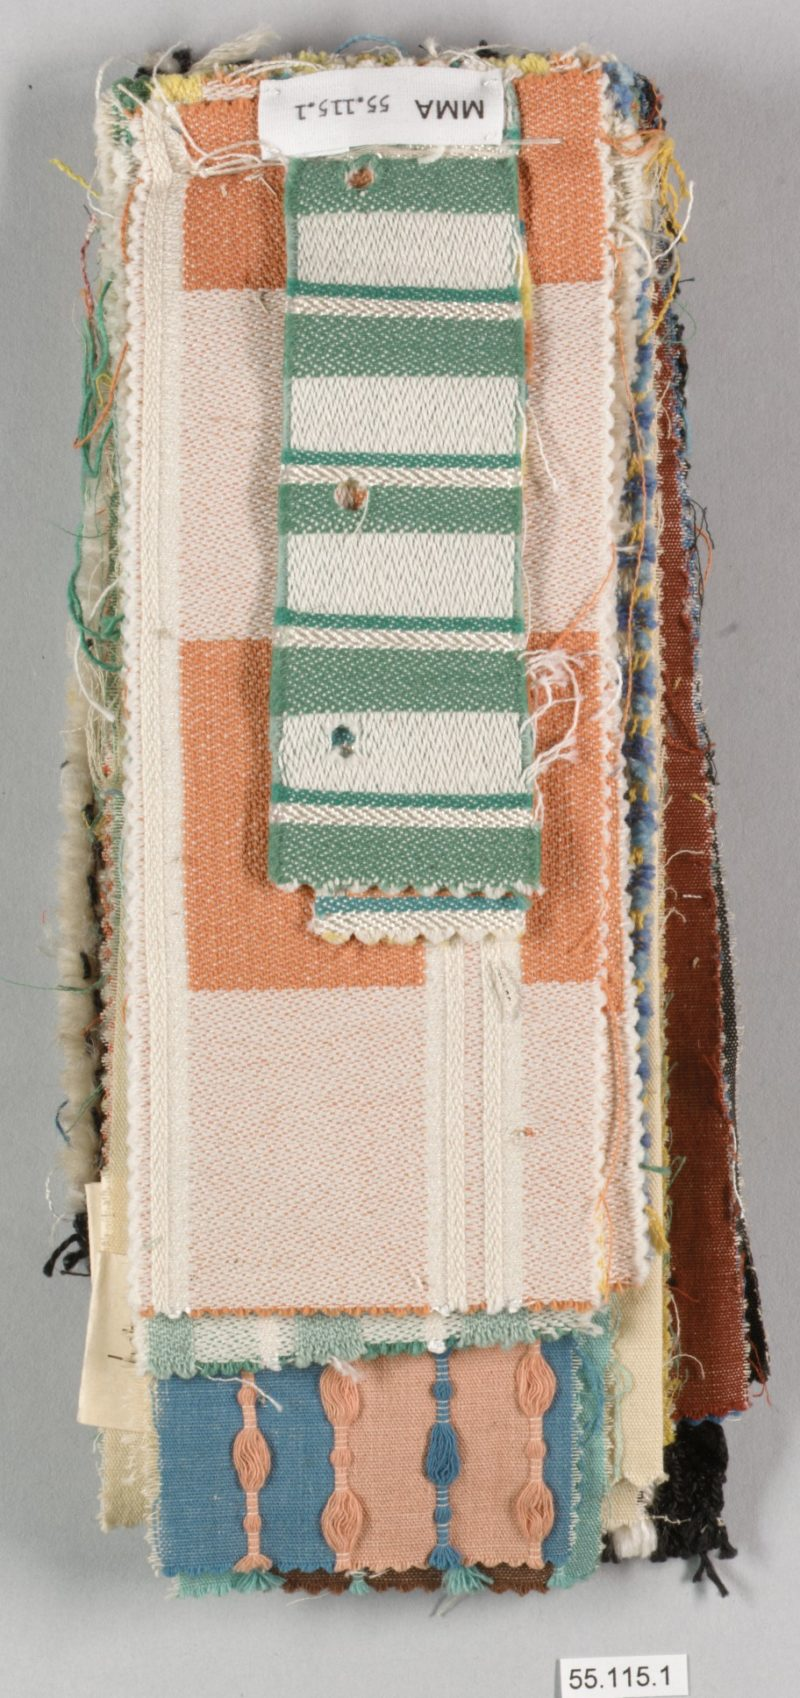 Otti Berger - Book, mid 1930s, cotton, 9.5 x 24.1cm (3 3/4 x 9 1/2 in.)